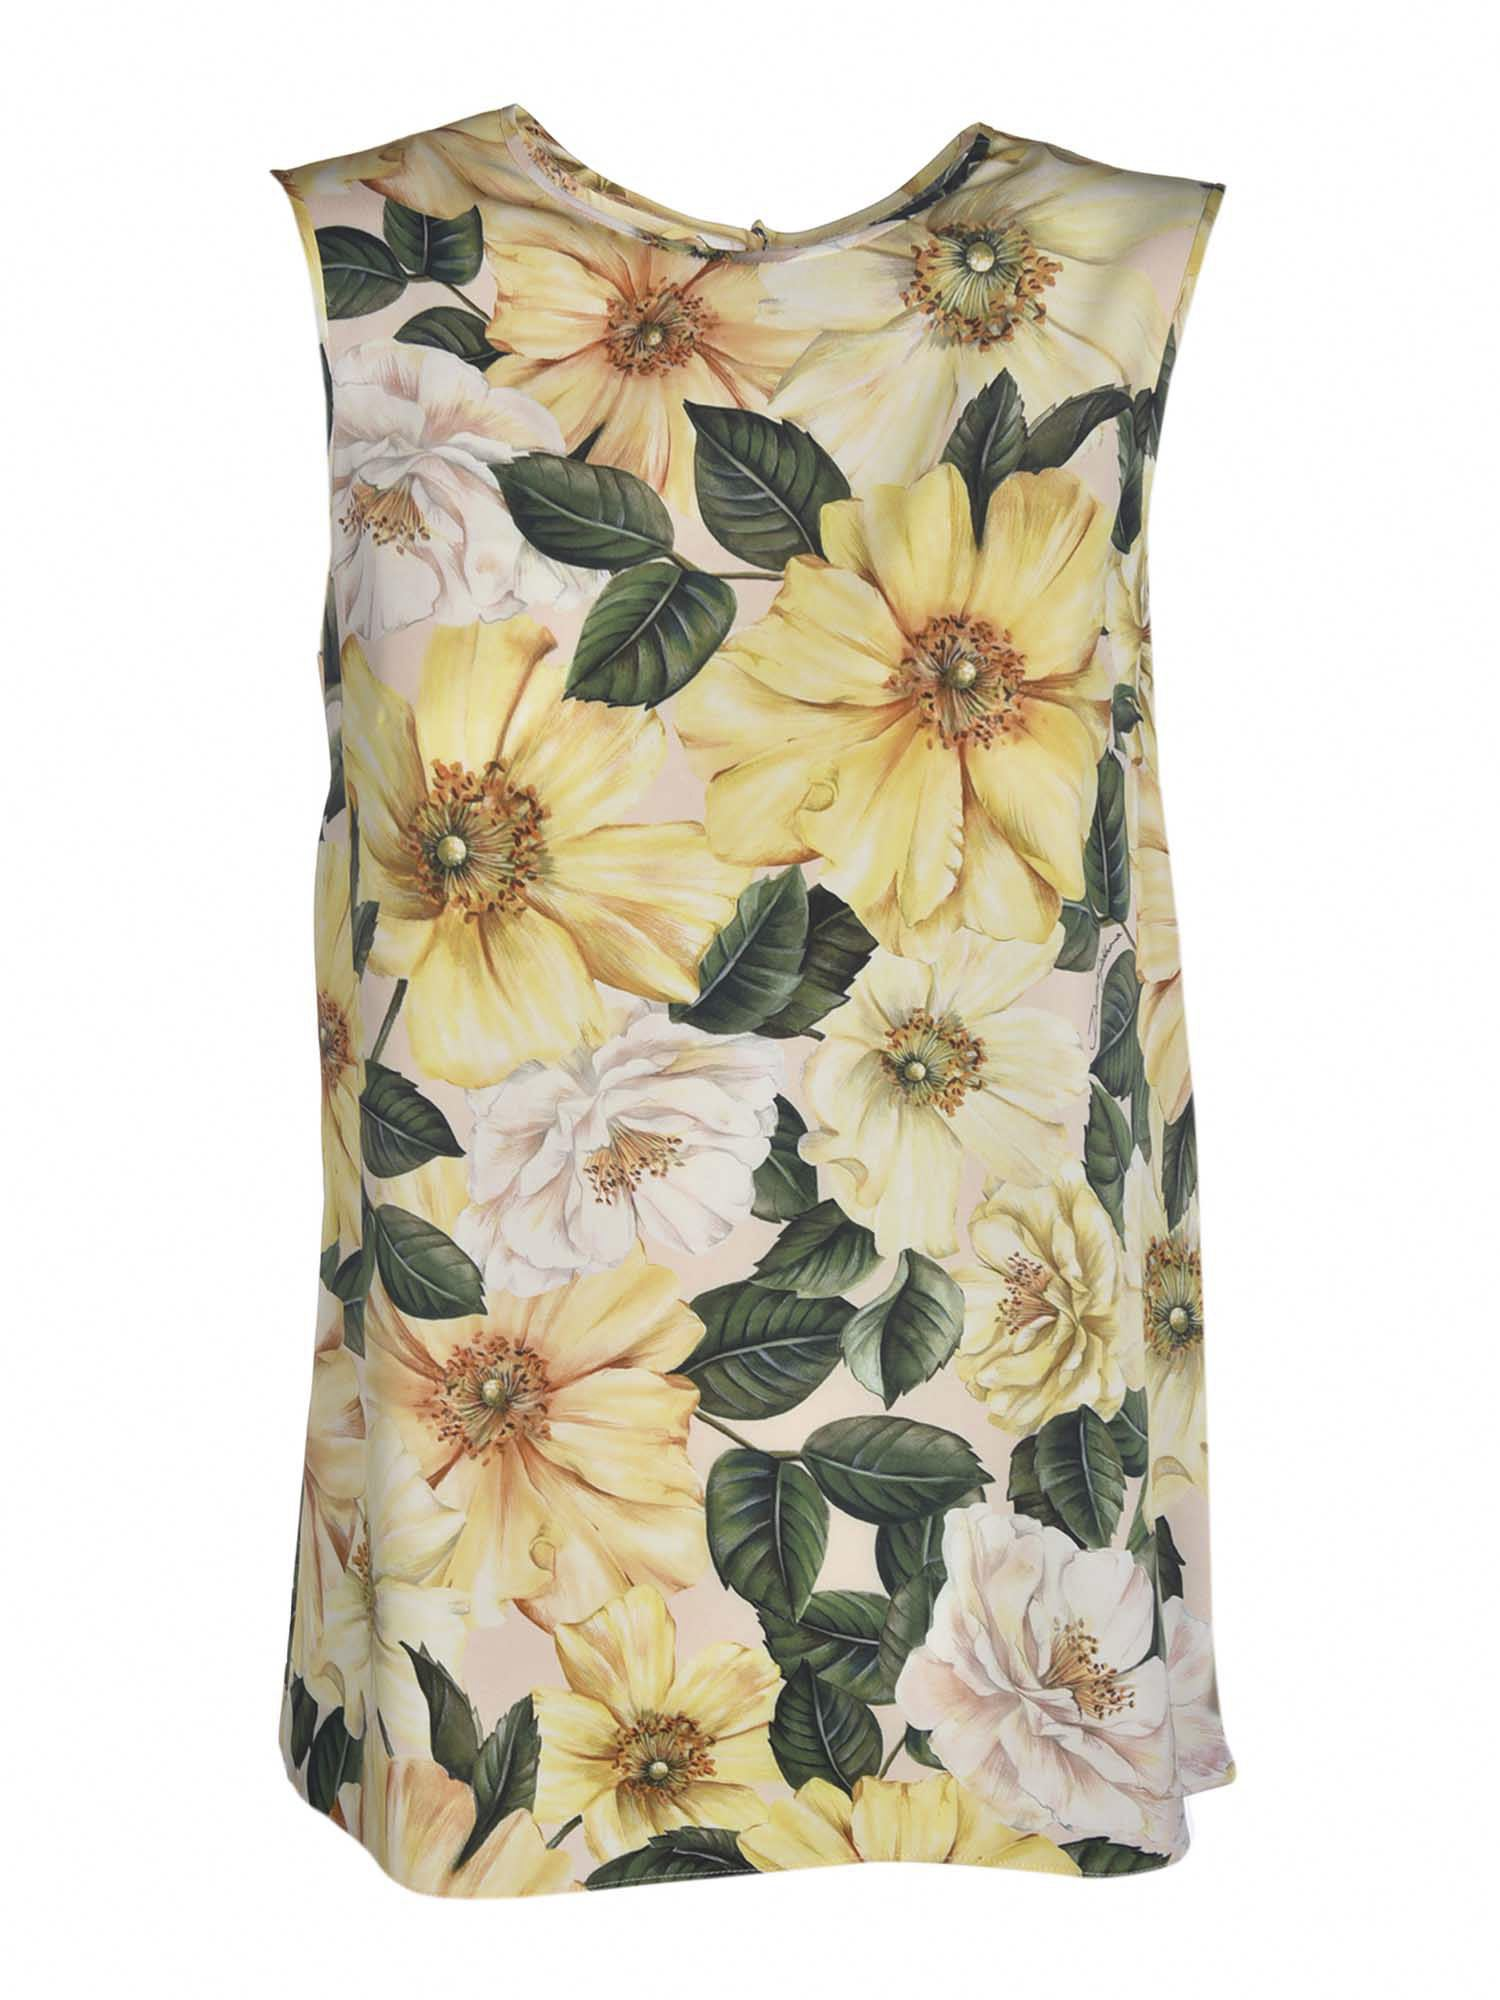 Dolce & Gabbana FLORAL PRINT TOP IN YELLOW